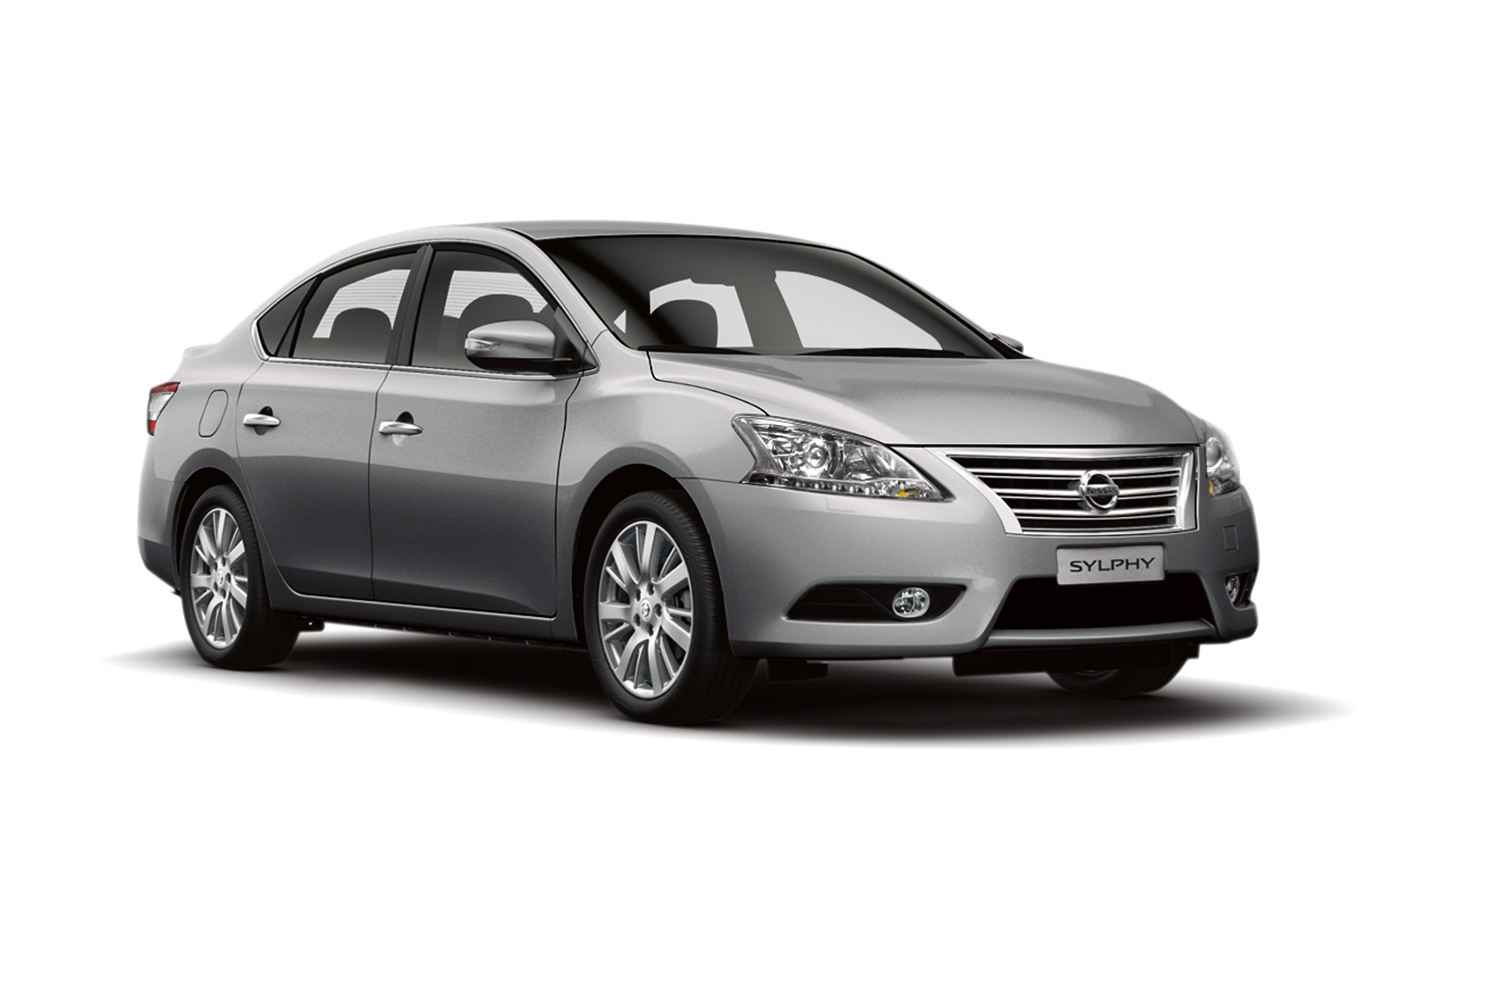 Nissan Sylphy 1.8 (B17) launched – RM112k-122k Image 244995